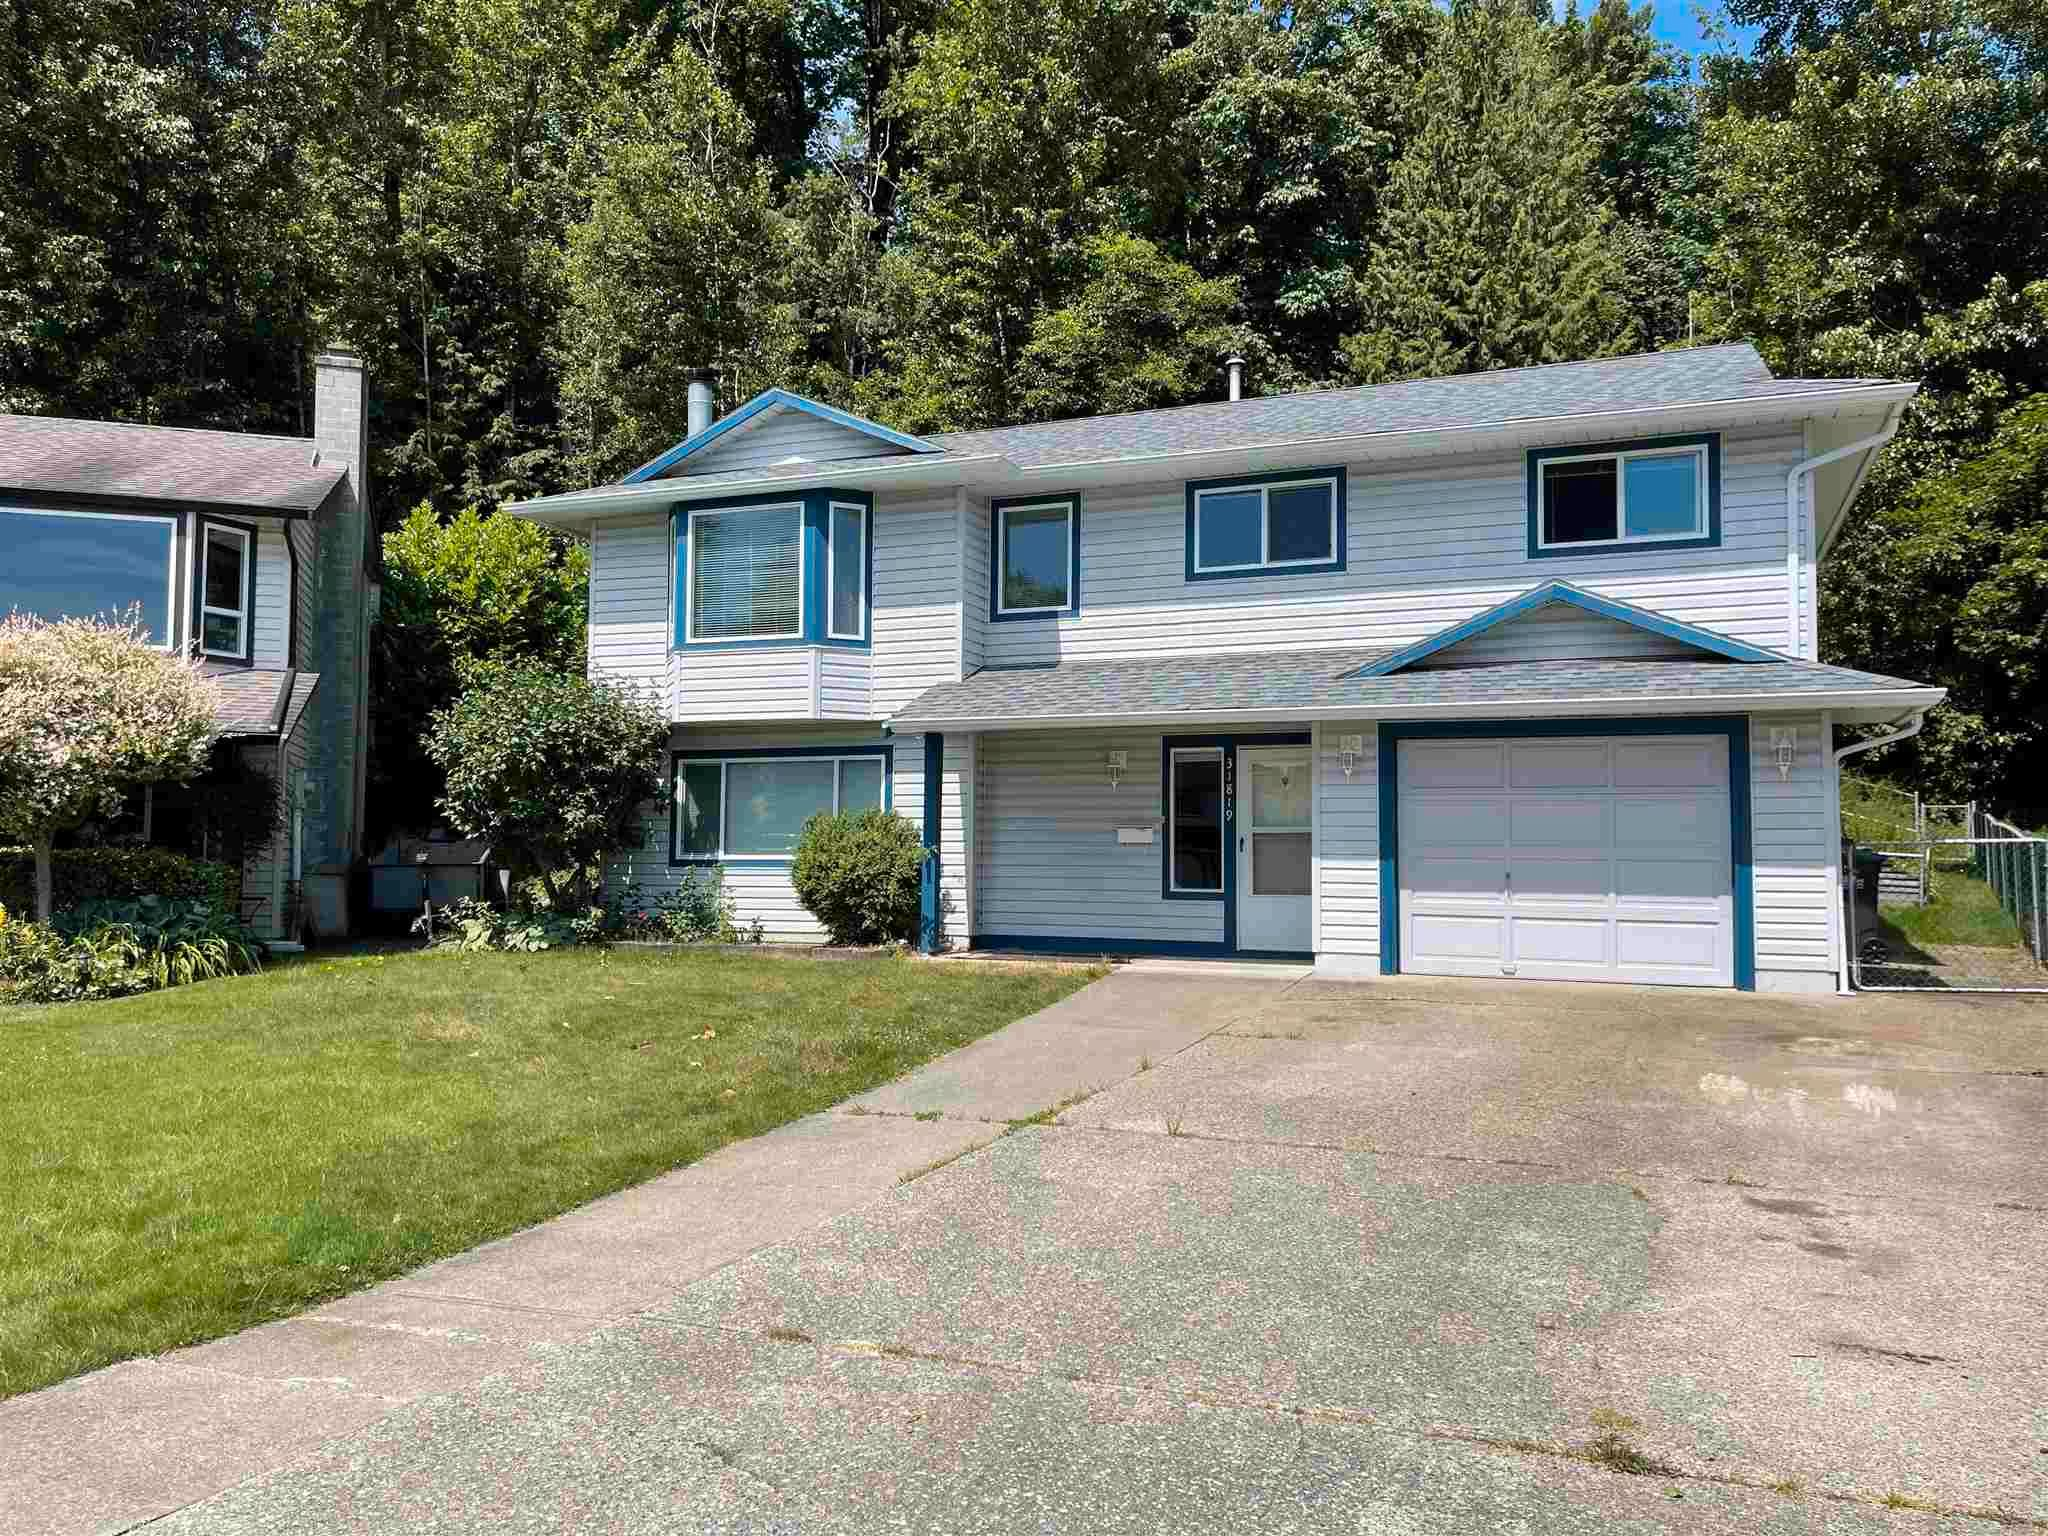 Main Photo: 31819 MAYNE Avenue in Abbotsford: Abbotsford West House for sale : MLS®# R2595643